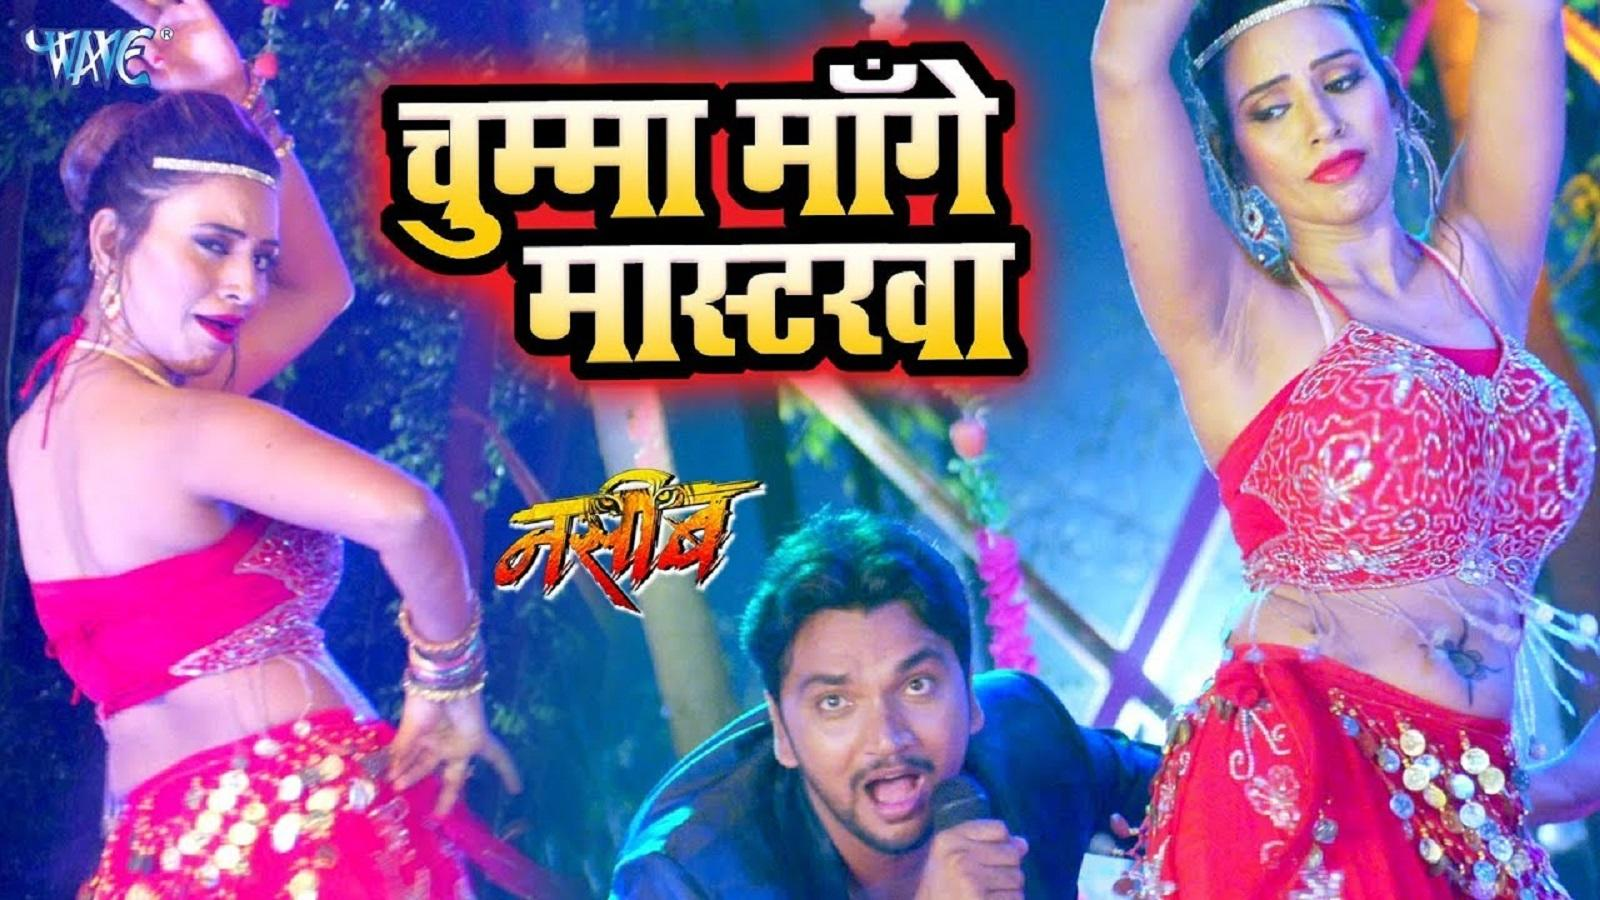 Watch: Bhojpuri song 'Chumma Mange Mastarawa' from 'Naseeb' sung by Gunjan  Singh